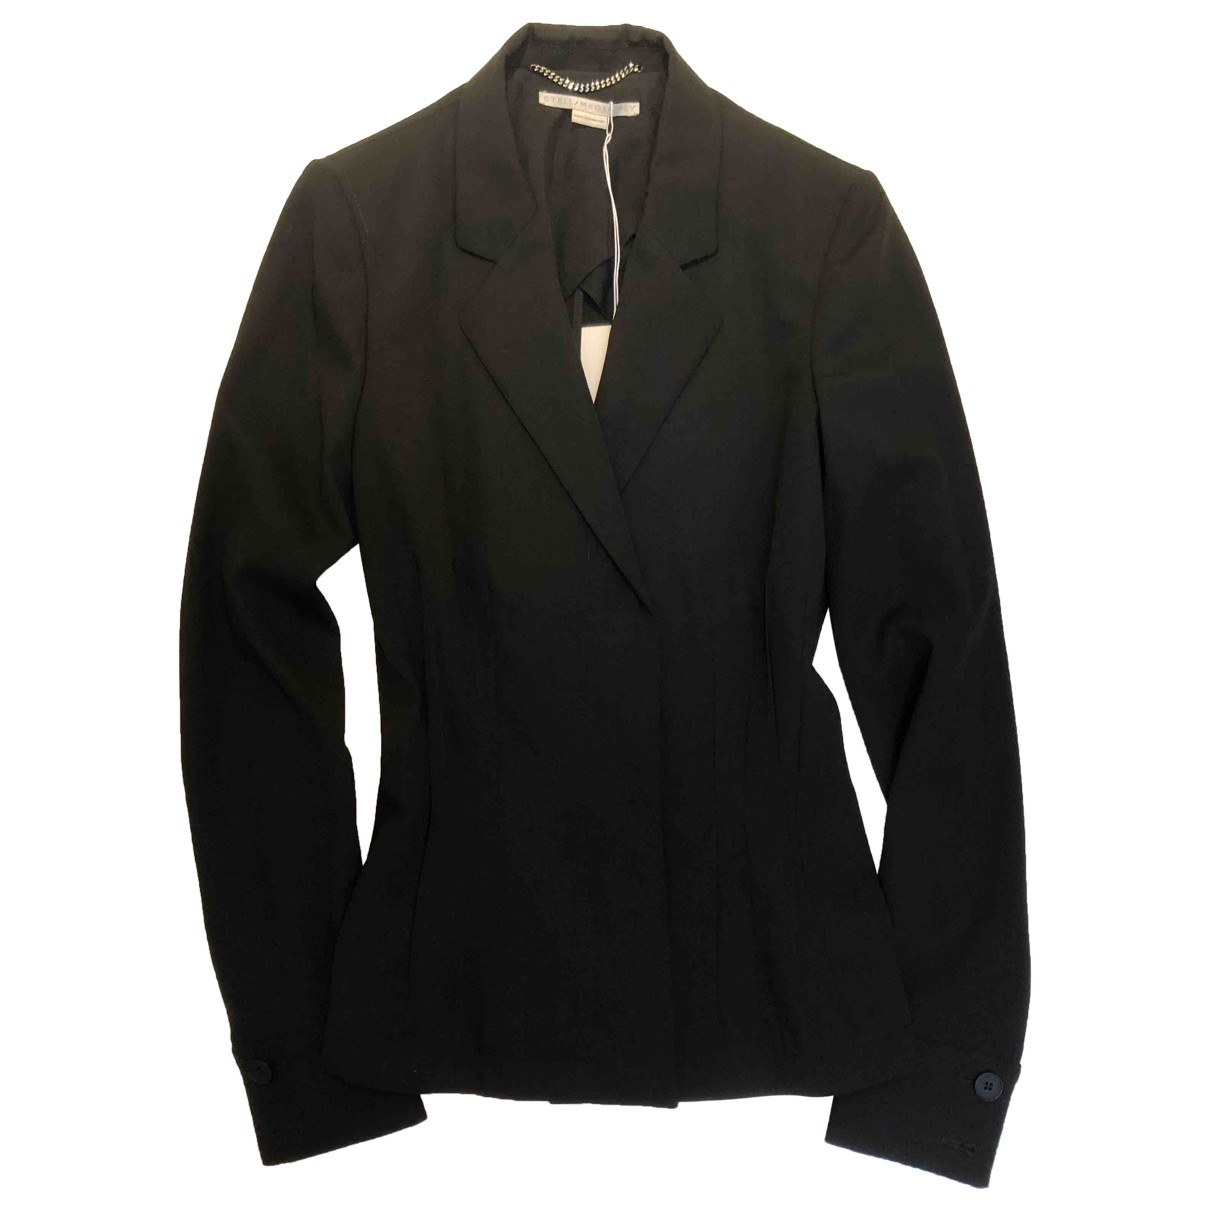 Stella Mccartney \N Black Wool jacket for Women 38 IT